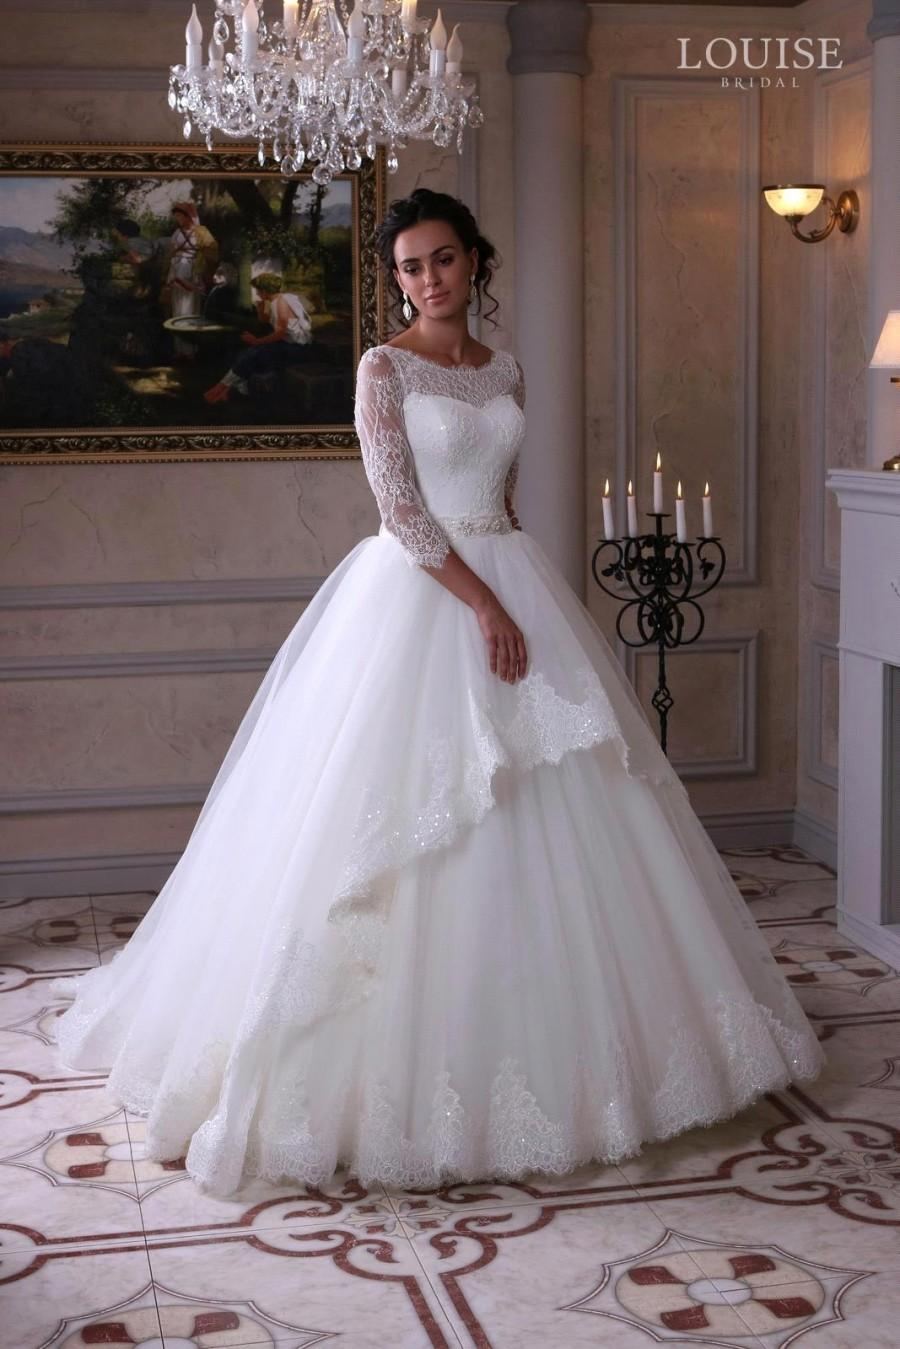 Vestido De Noiva 2016 New 3 4 Sleeve A Line Wedding Dresses Lace Applique Beaded Sash Dress Bridal Gowns Mariage Online With 1093 Piece On